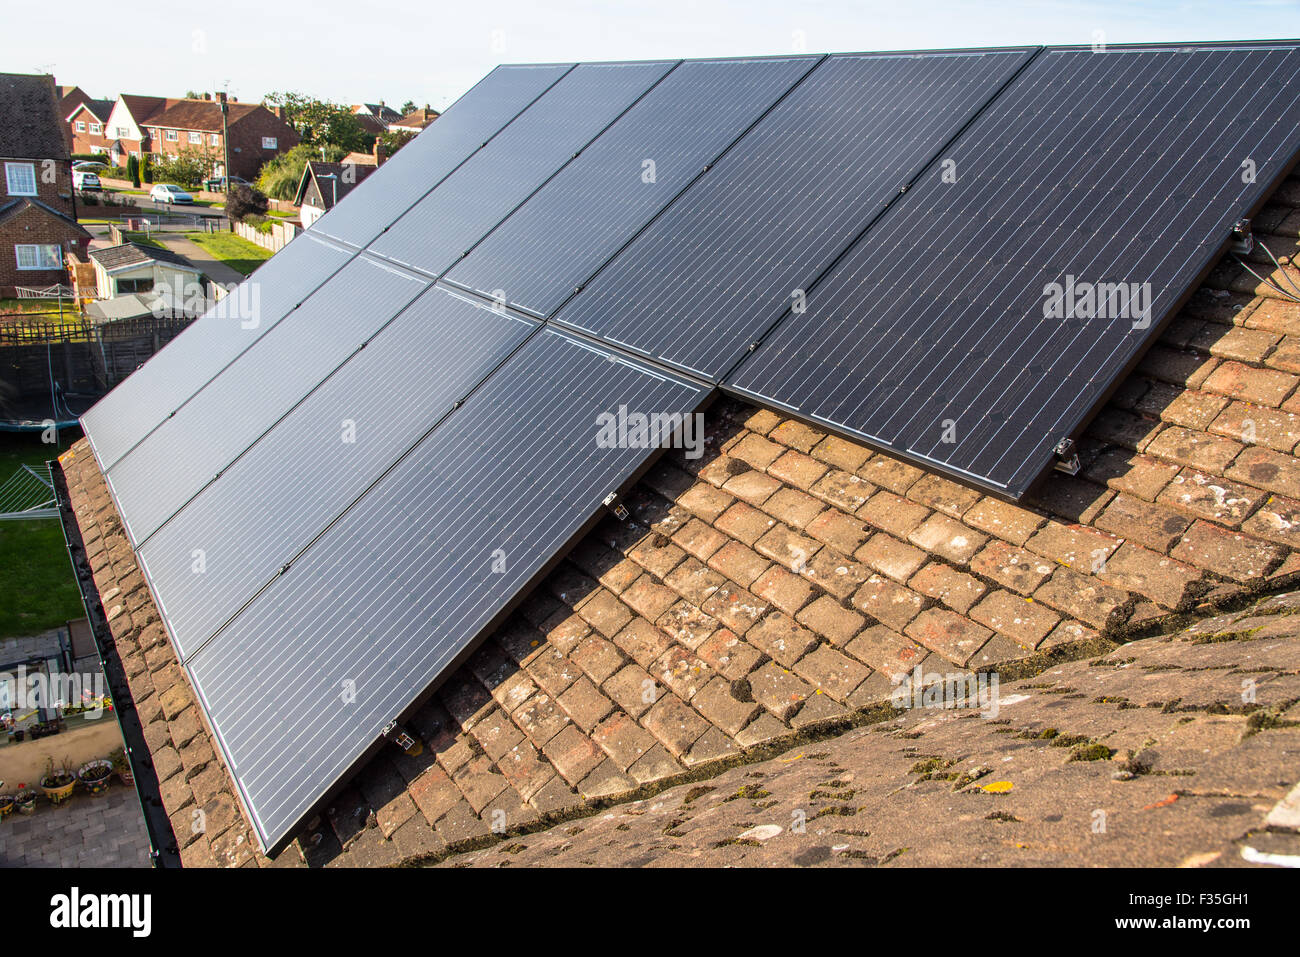 Newly installed solar panels on a house roof. - Stock Image